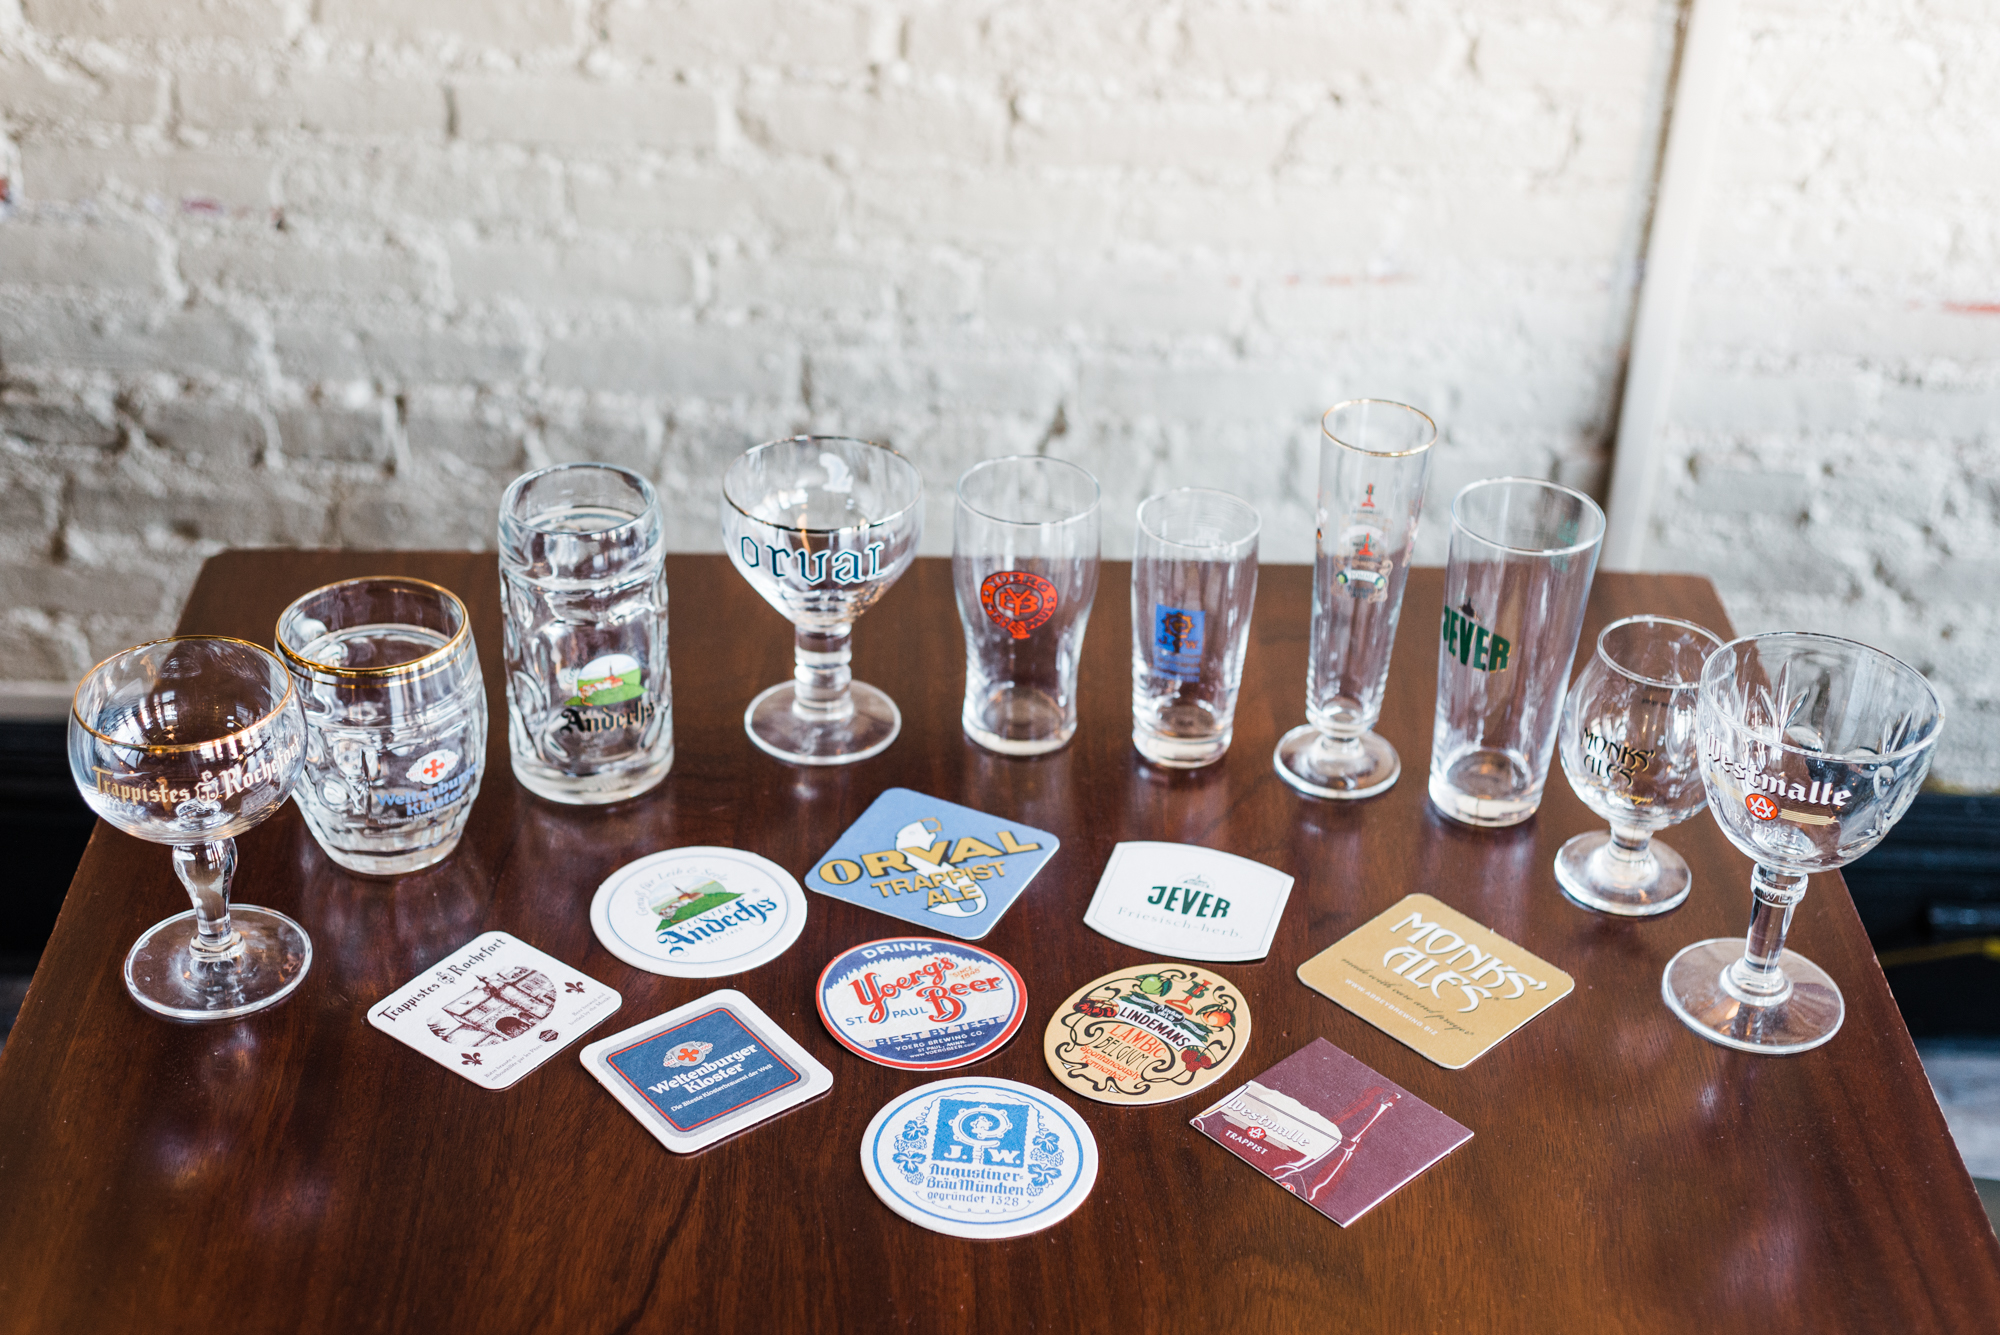 Glassware and coasters for each brewery poured at Yoerg. Each beer must be poured in the proper glass and paired with the proper coaster. Photo by Katelyn Regenscheid